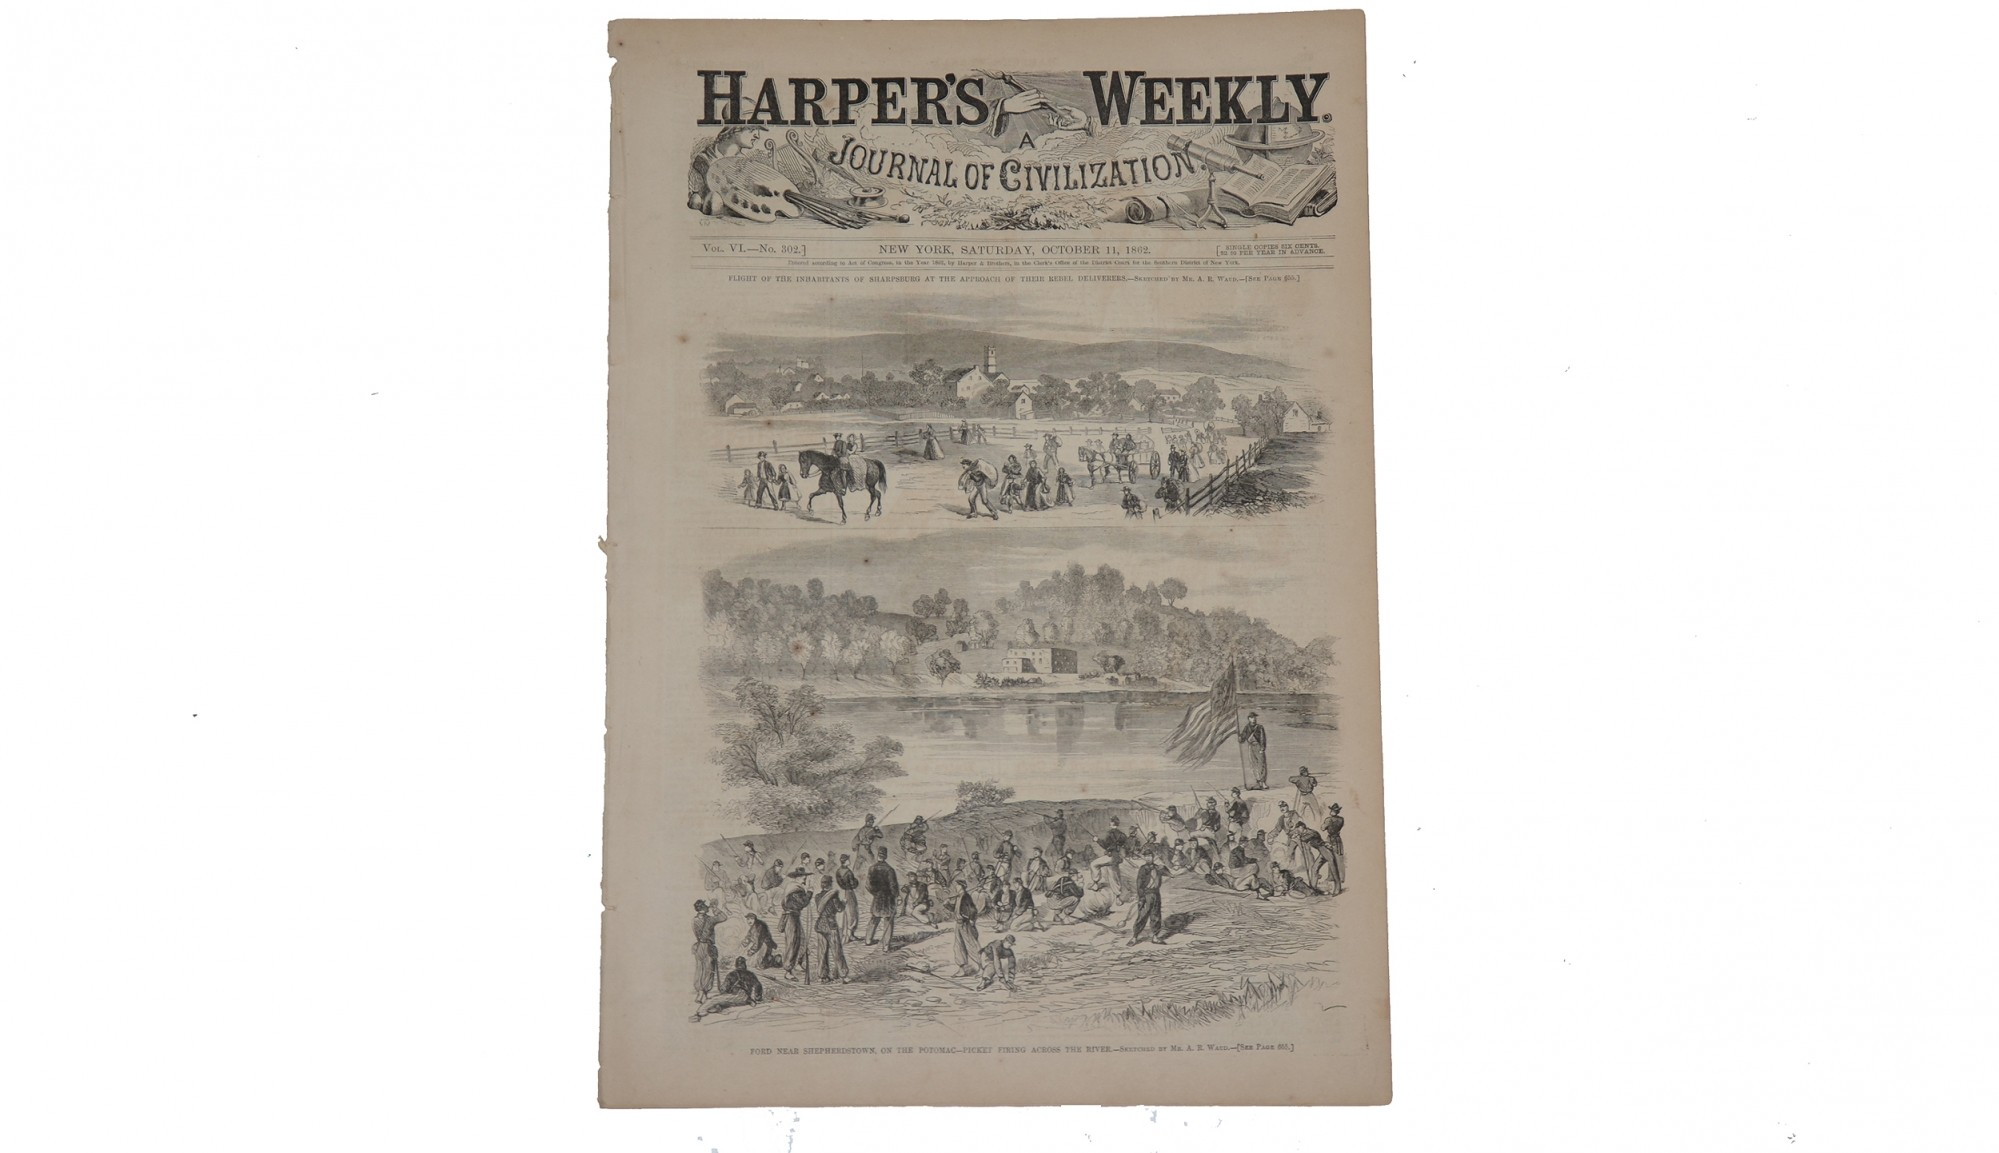 HARPER'S WEEKLY DATED OCTOBER 11, 1862